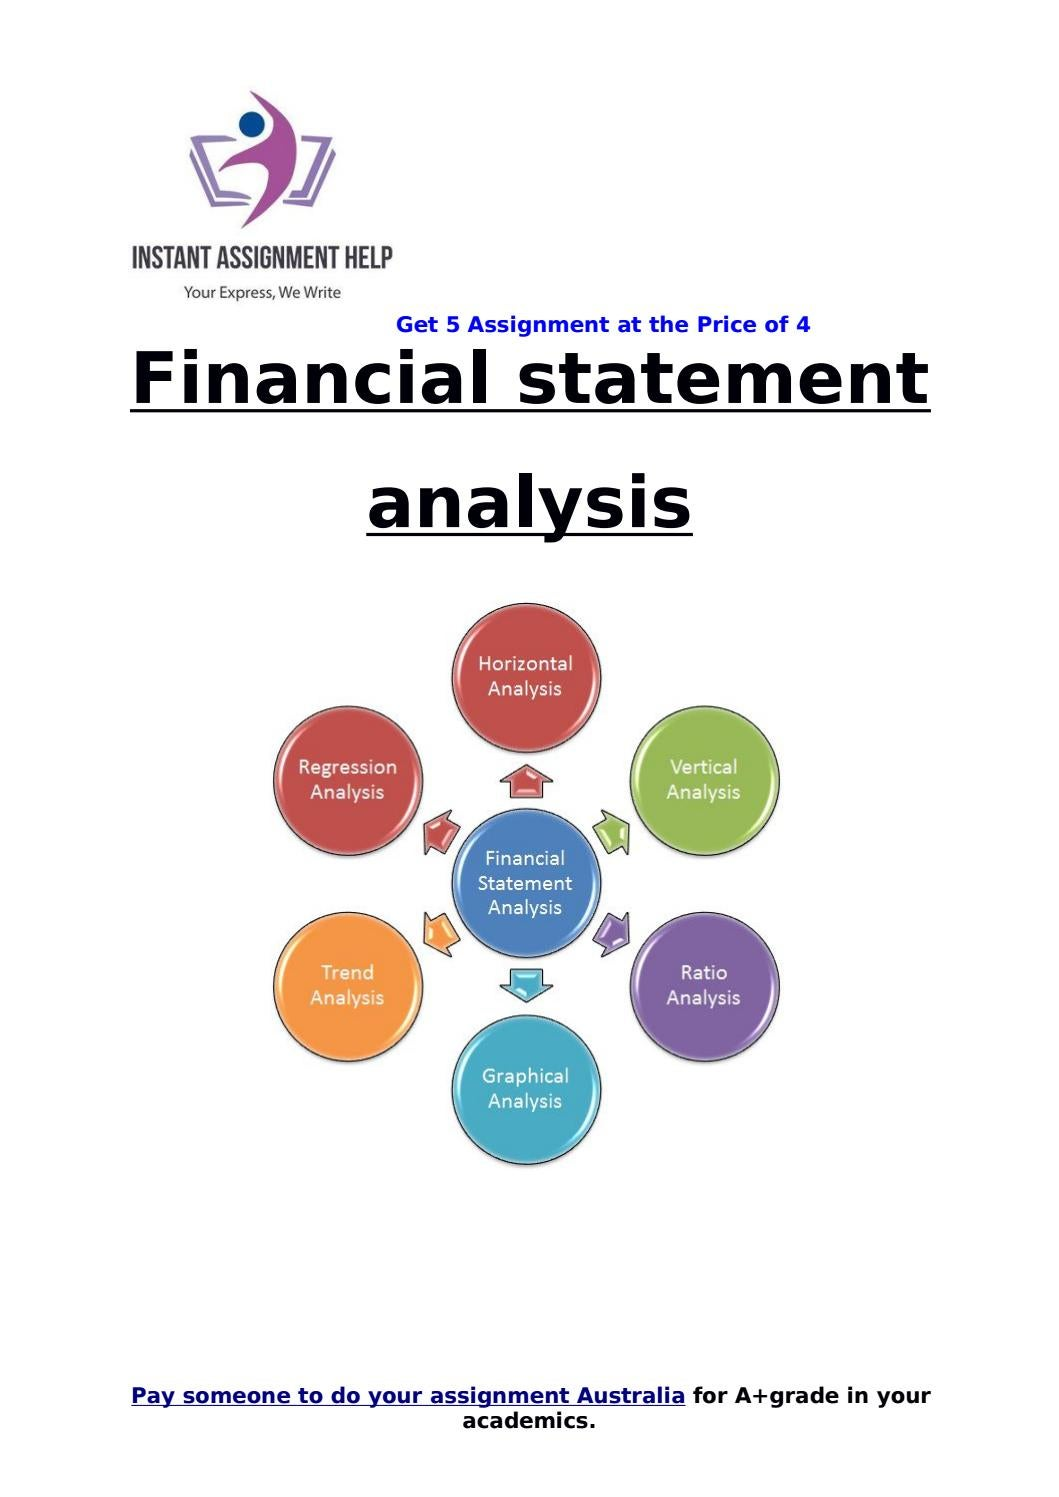 Financial statement analysis sample for students by instant financial statement analysis sample for students by instant assignment help australia issuu ccuart Image collections